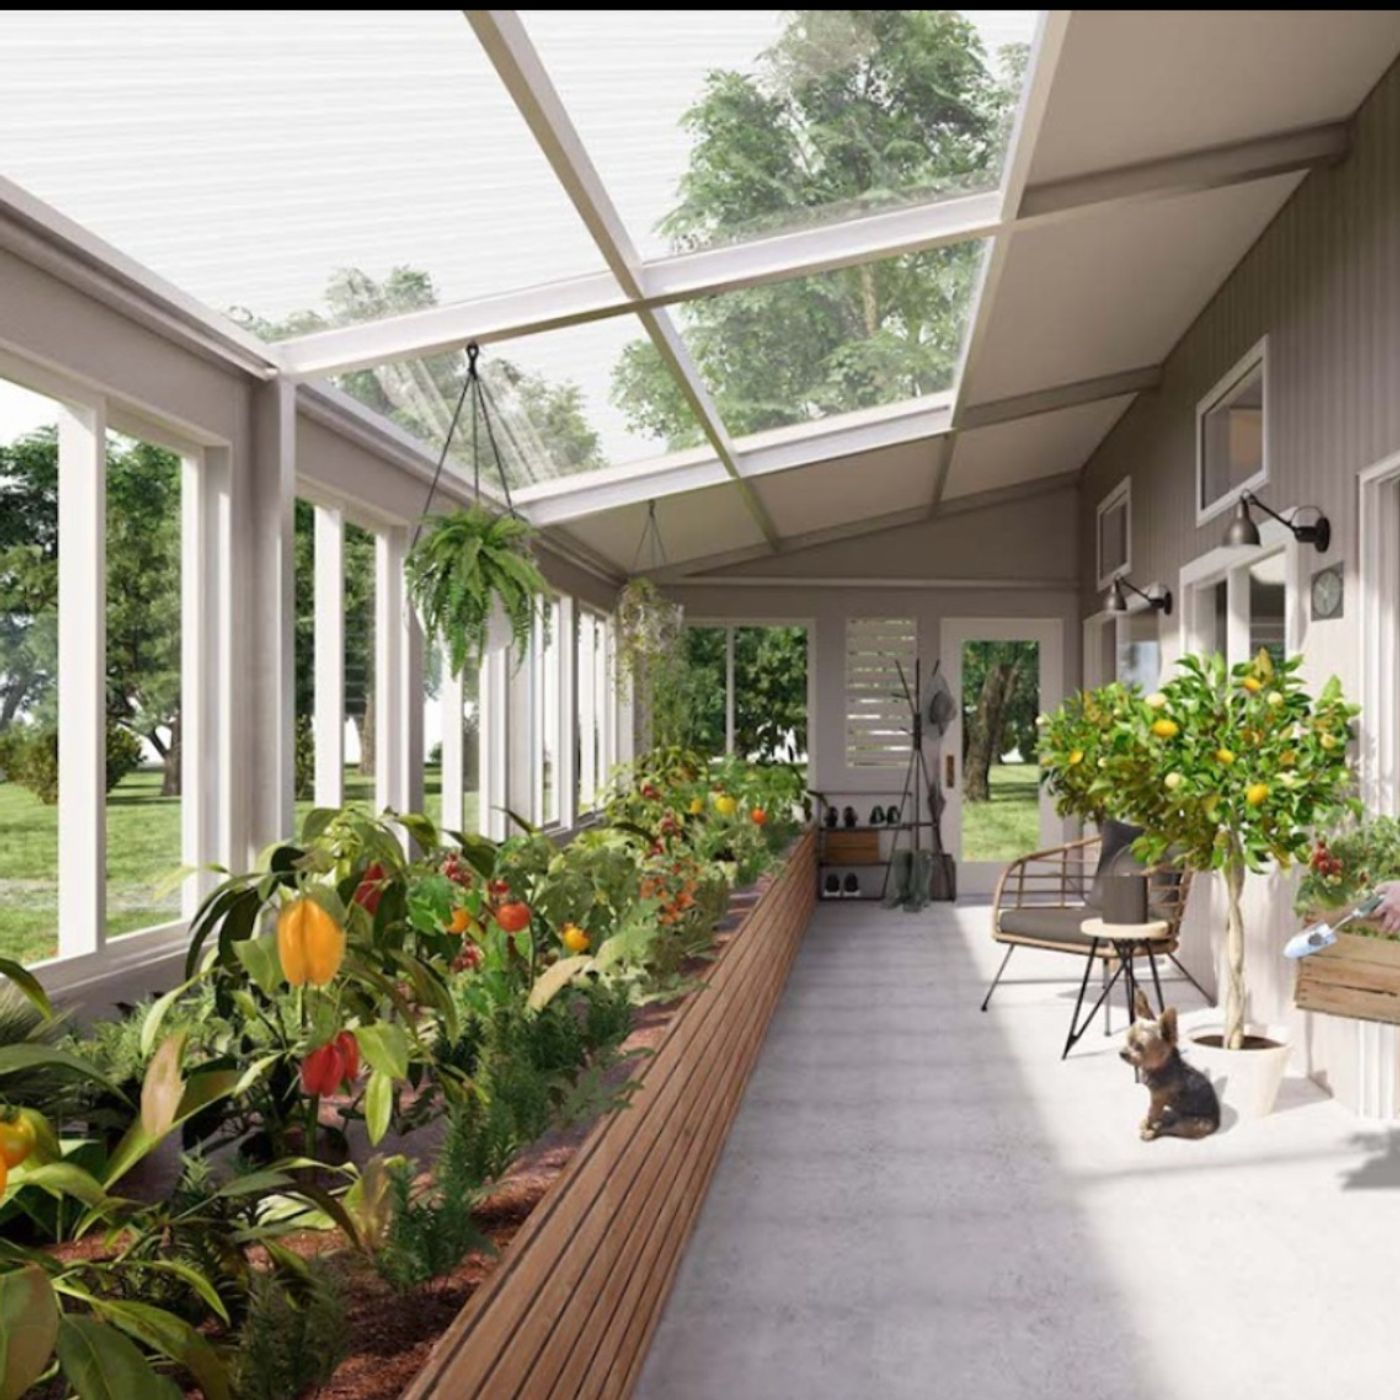 Ceres Greenhouse Solutions - Designing for a Better Future